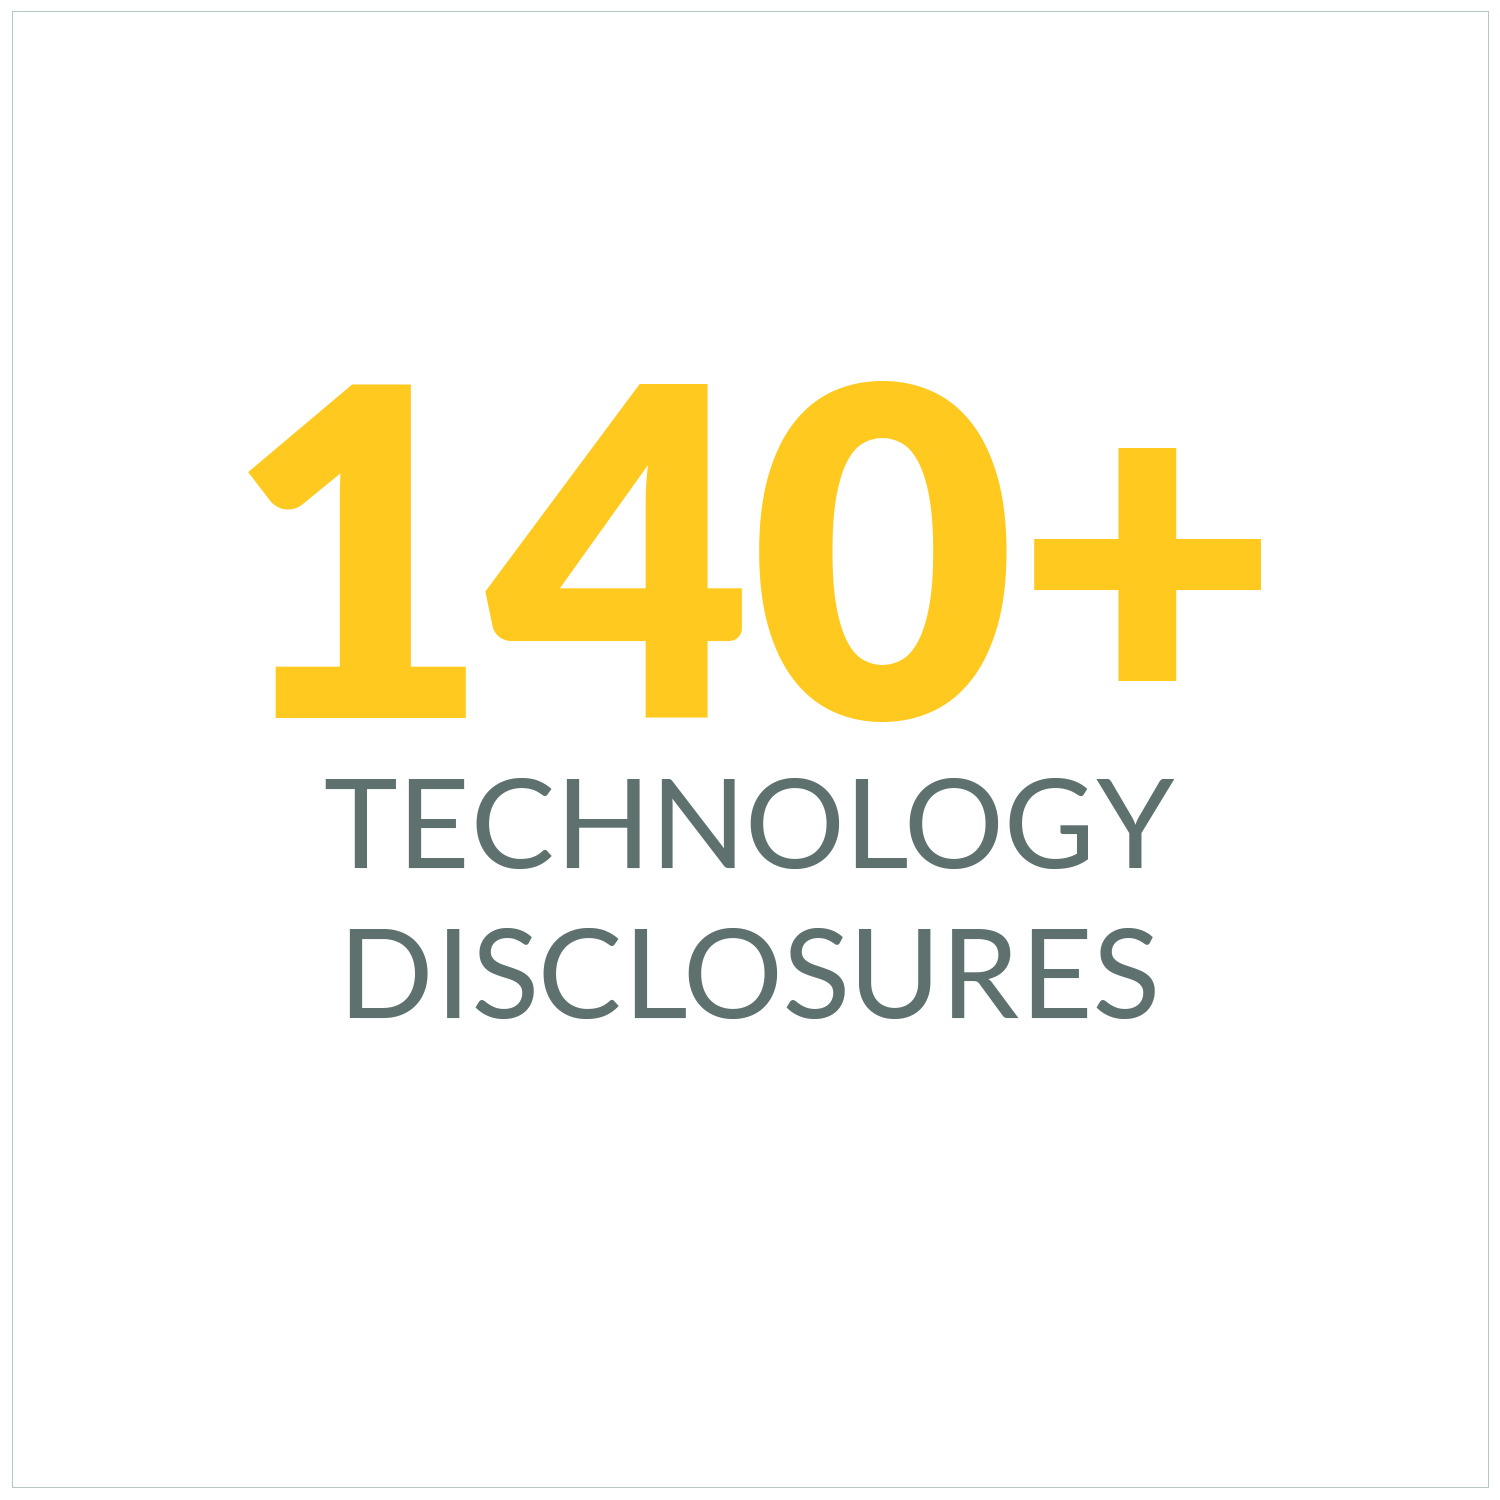 Technology disclosures for OHSU in FY2019